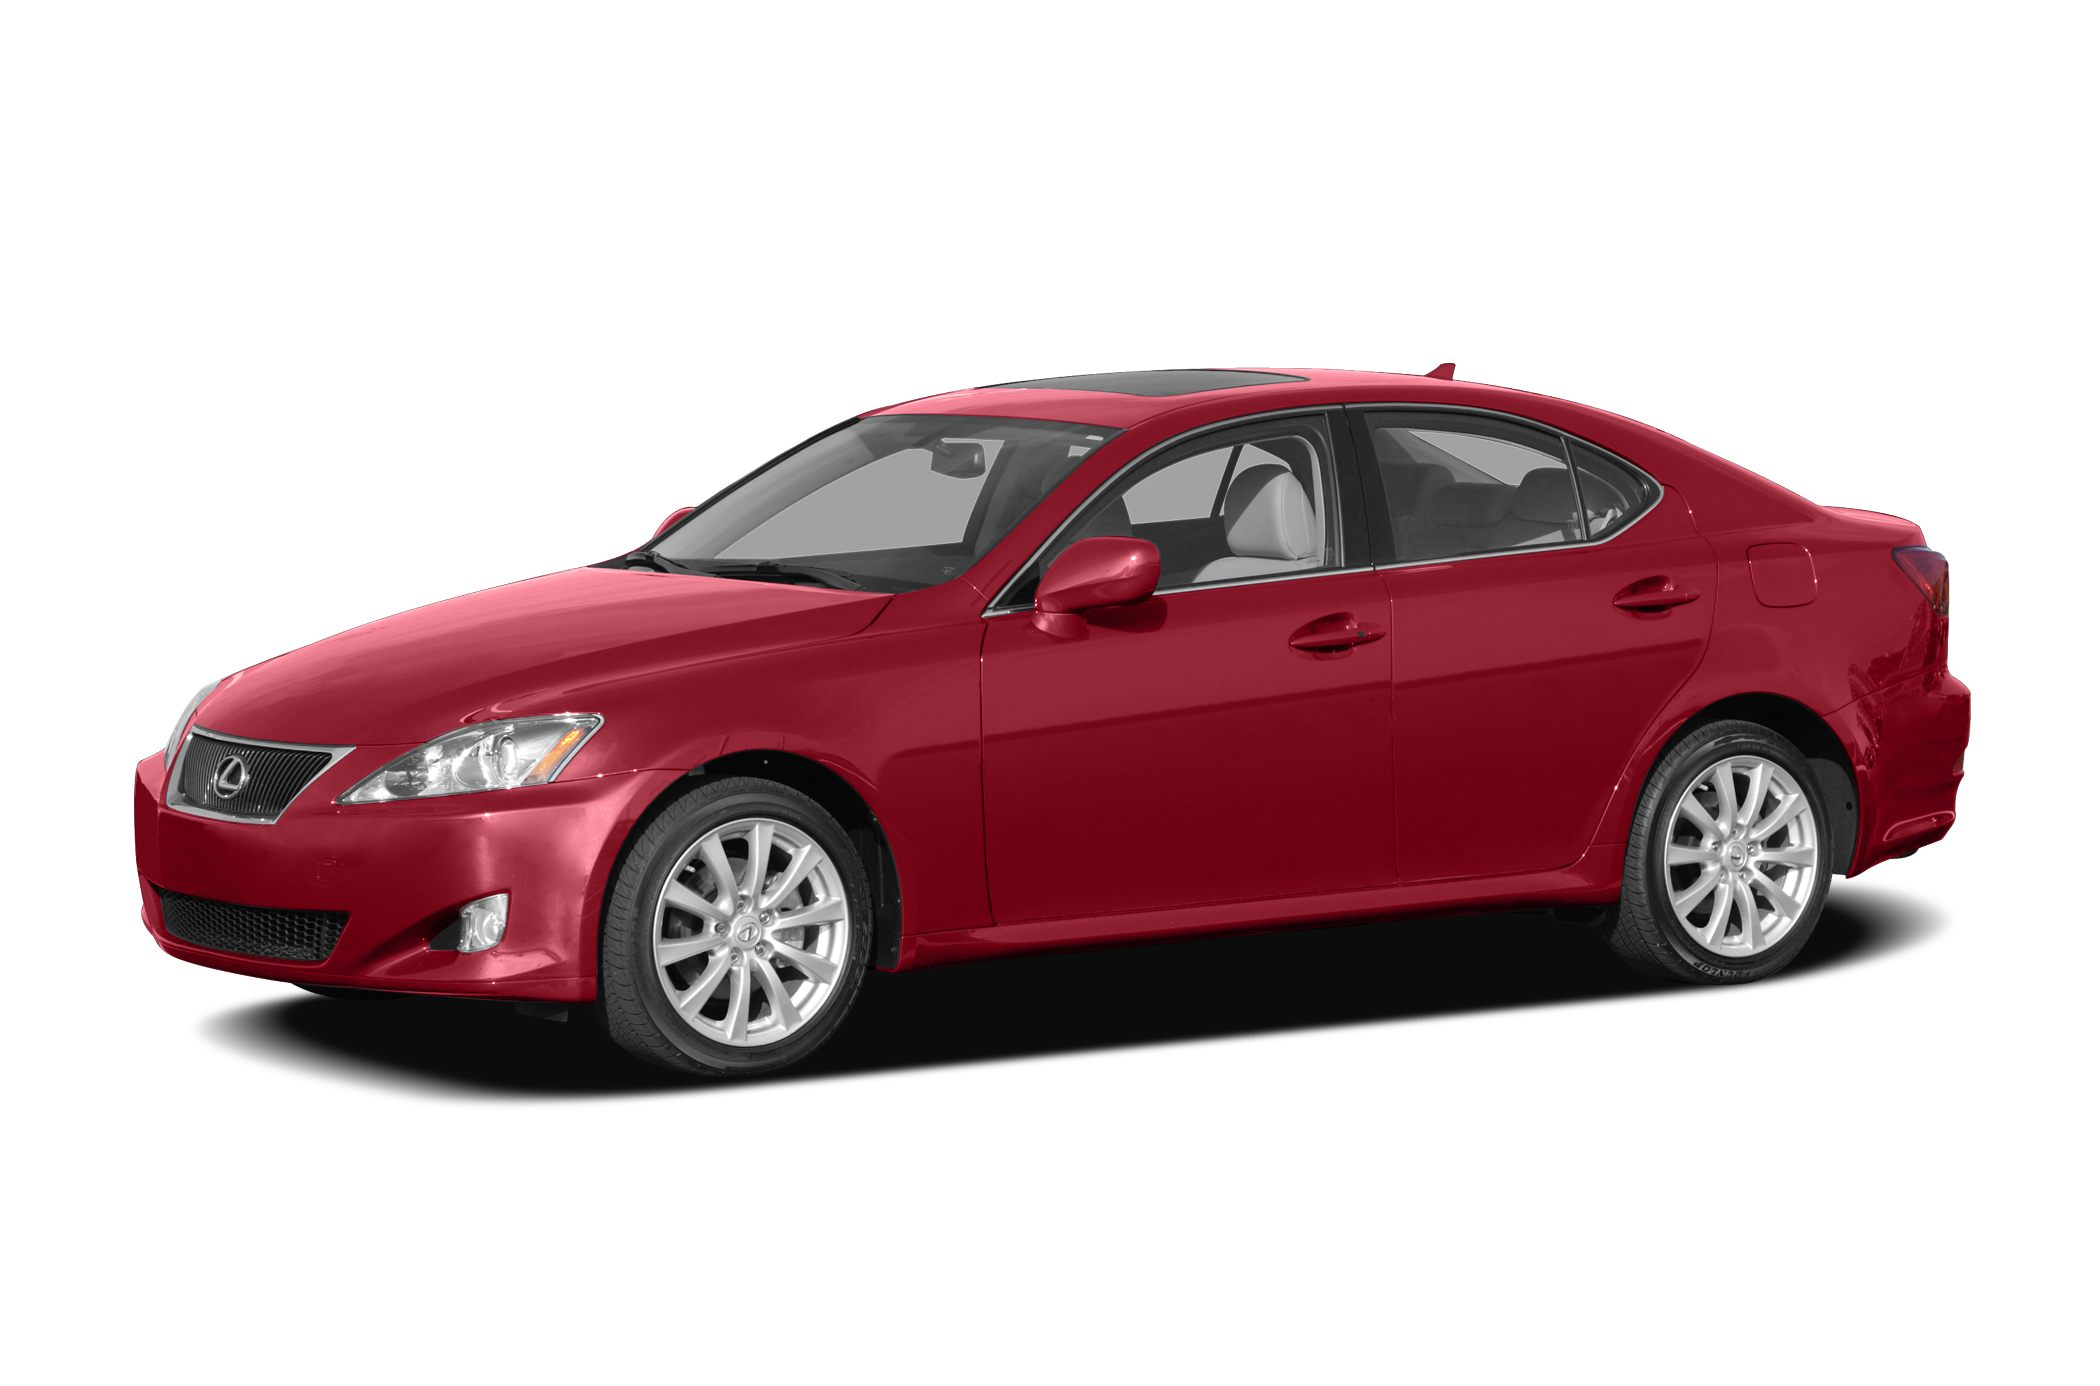 2007 Lexus IS 250 Sedan for sale in Wenatchee for $23,990 with 96,916 miles.